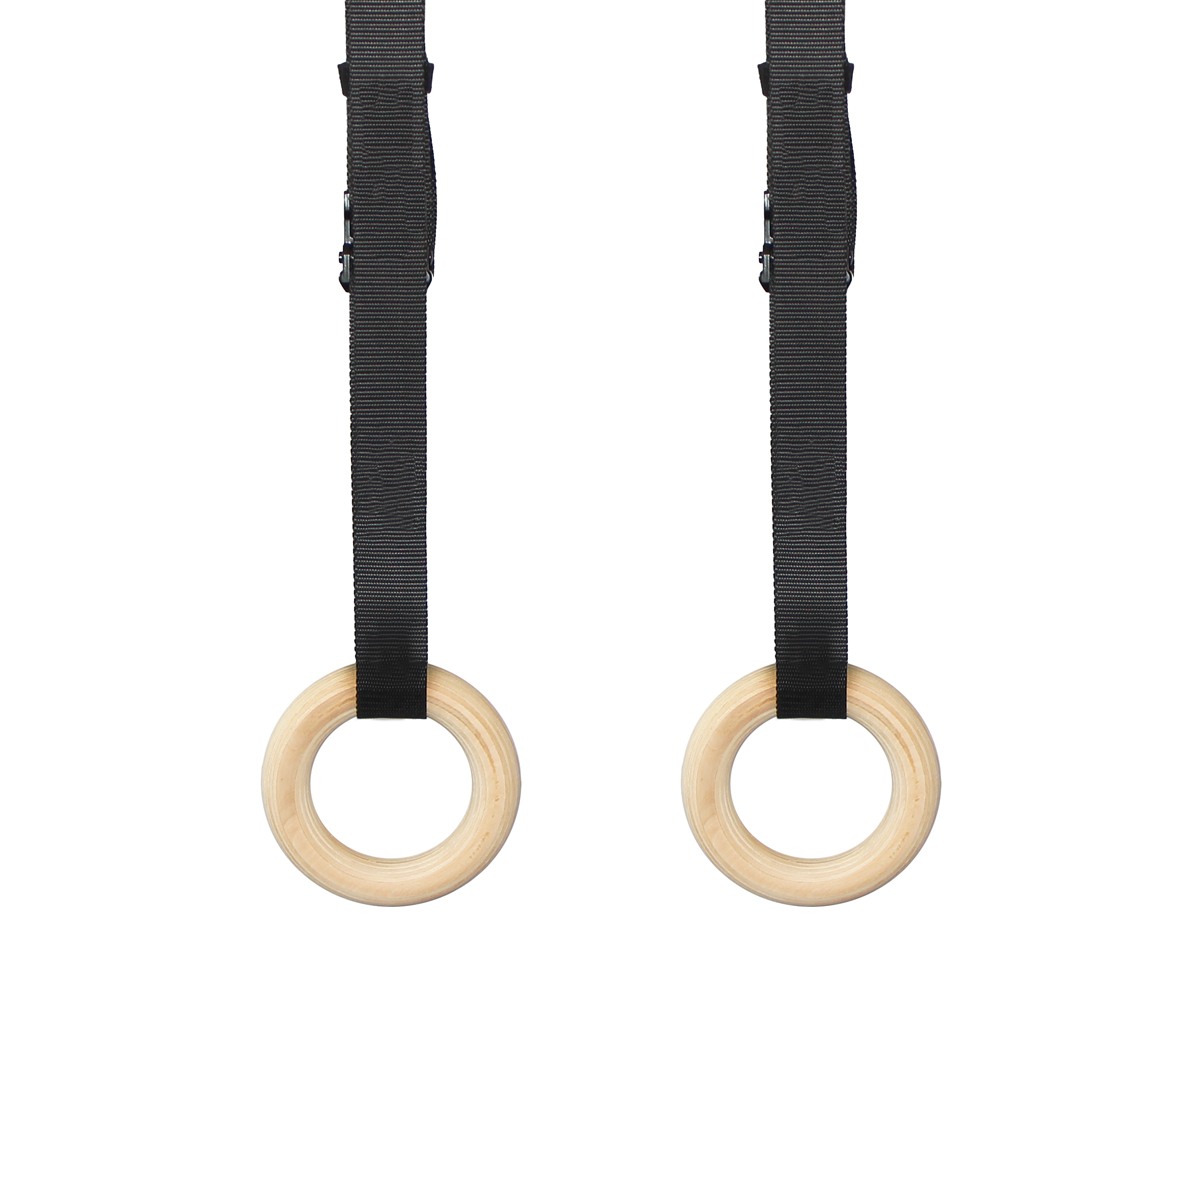 Kids Wooden Gymnastic Rings & Premium Adjustable Straps